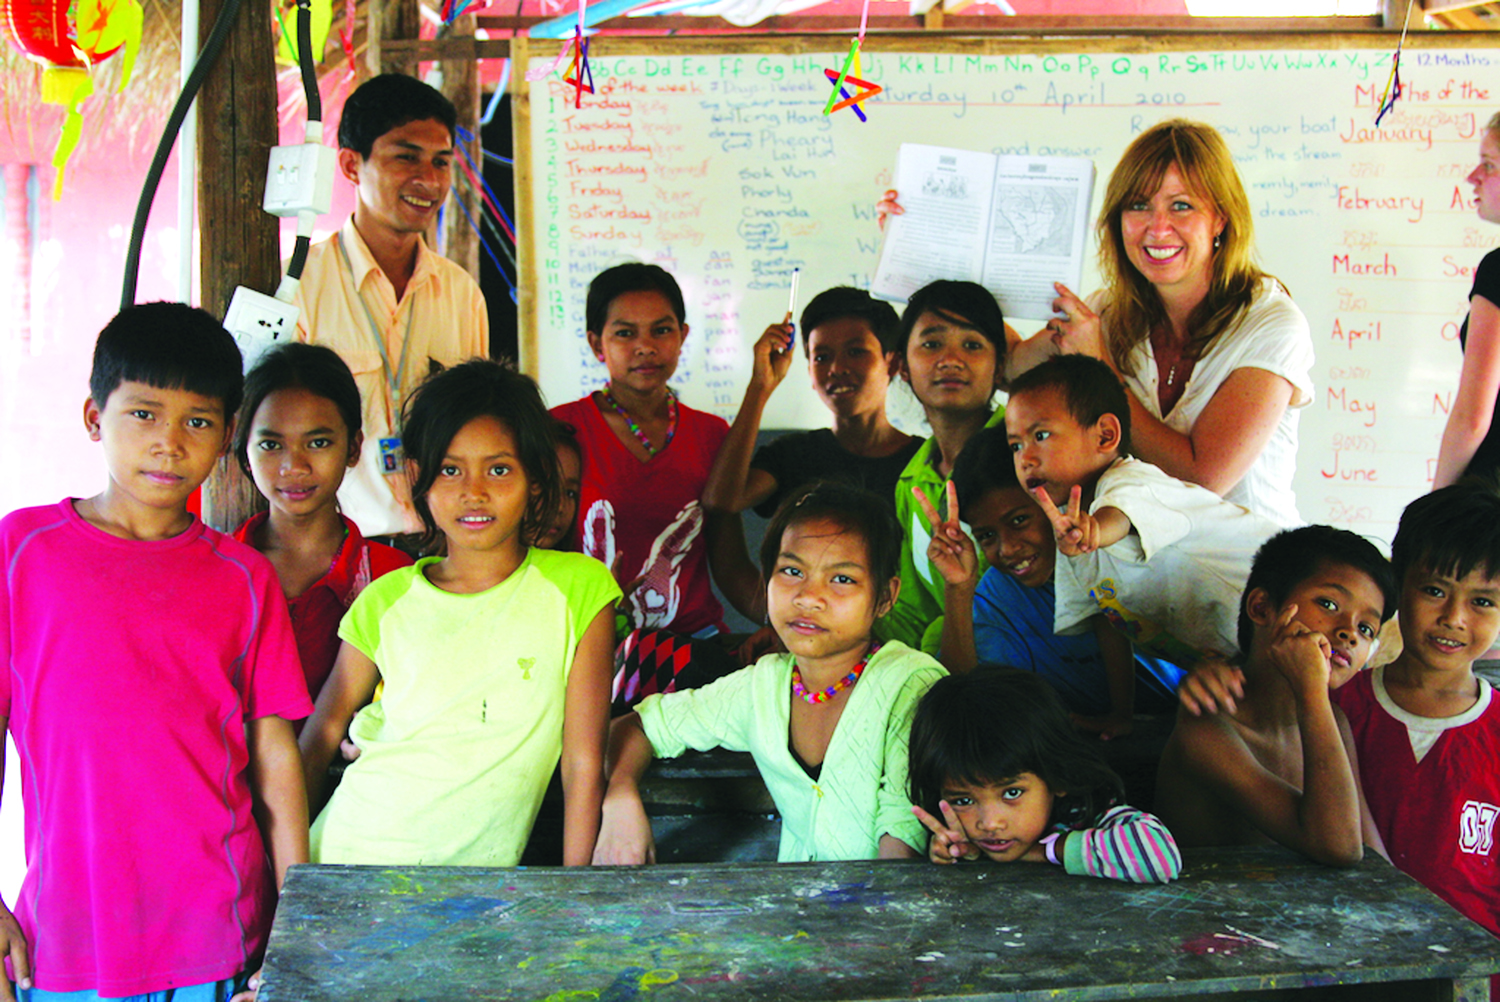 Kristin at the Opportunities and Development thru Art (ODA) Free Village English School in Siem Reap, Cambodia.